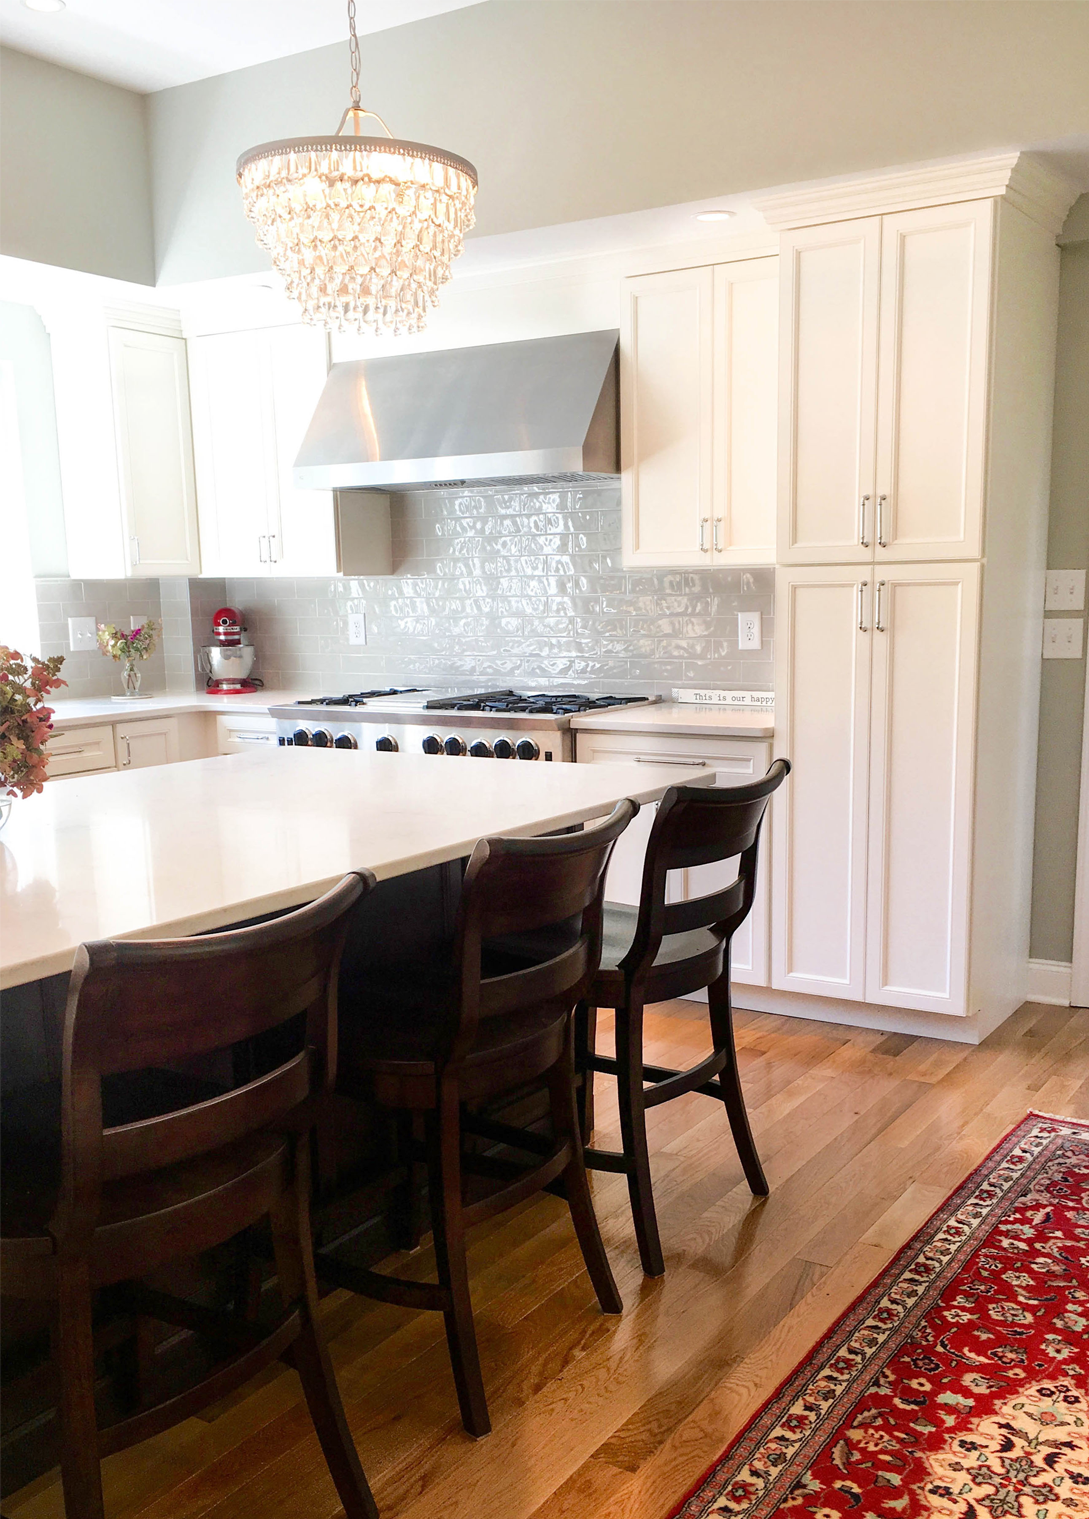 The crystal pendant adds glam to this classic shaker kitchen ...